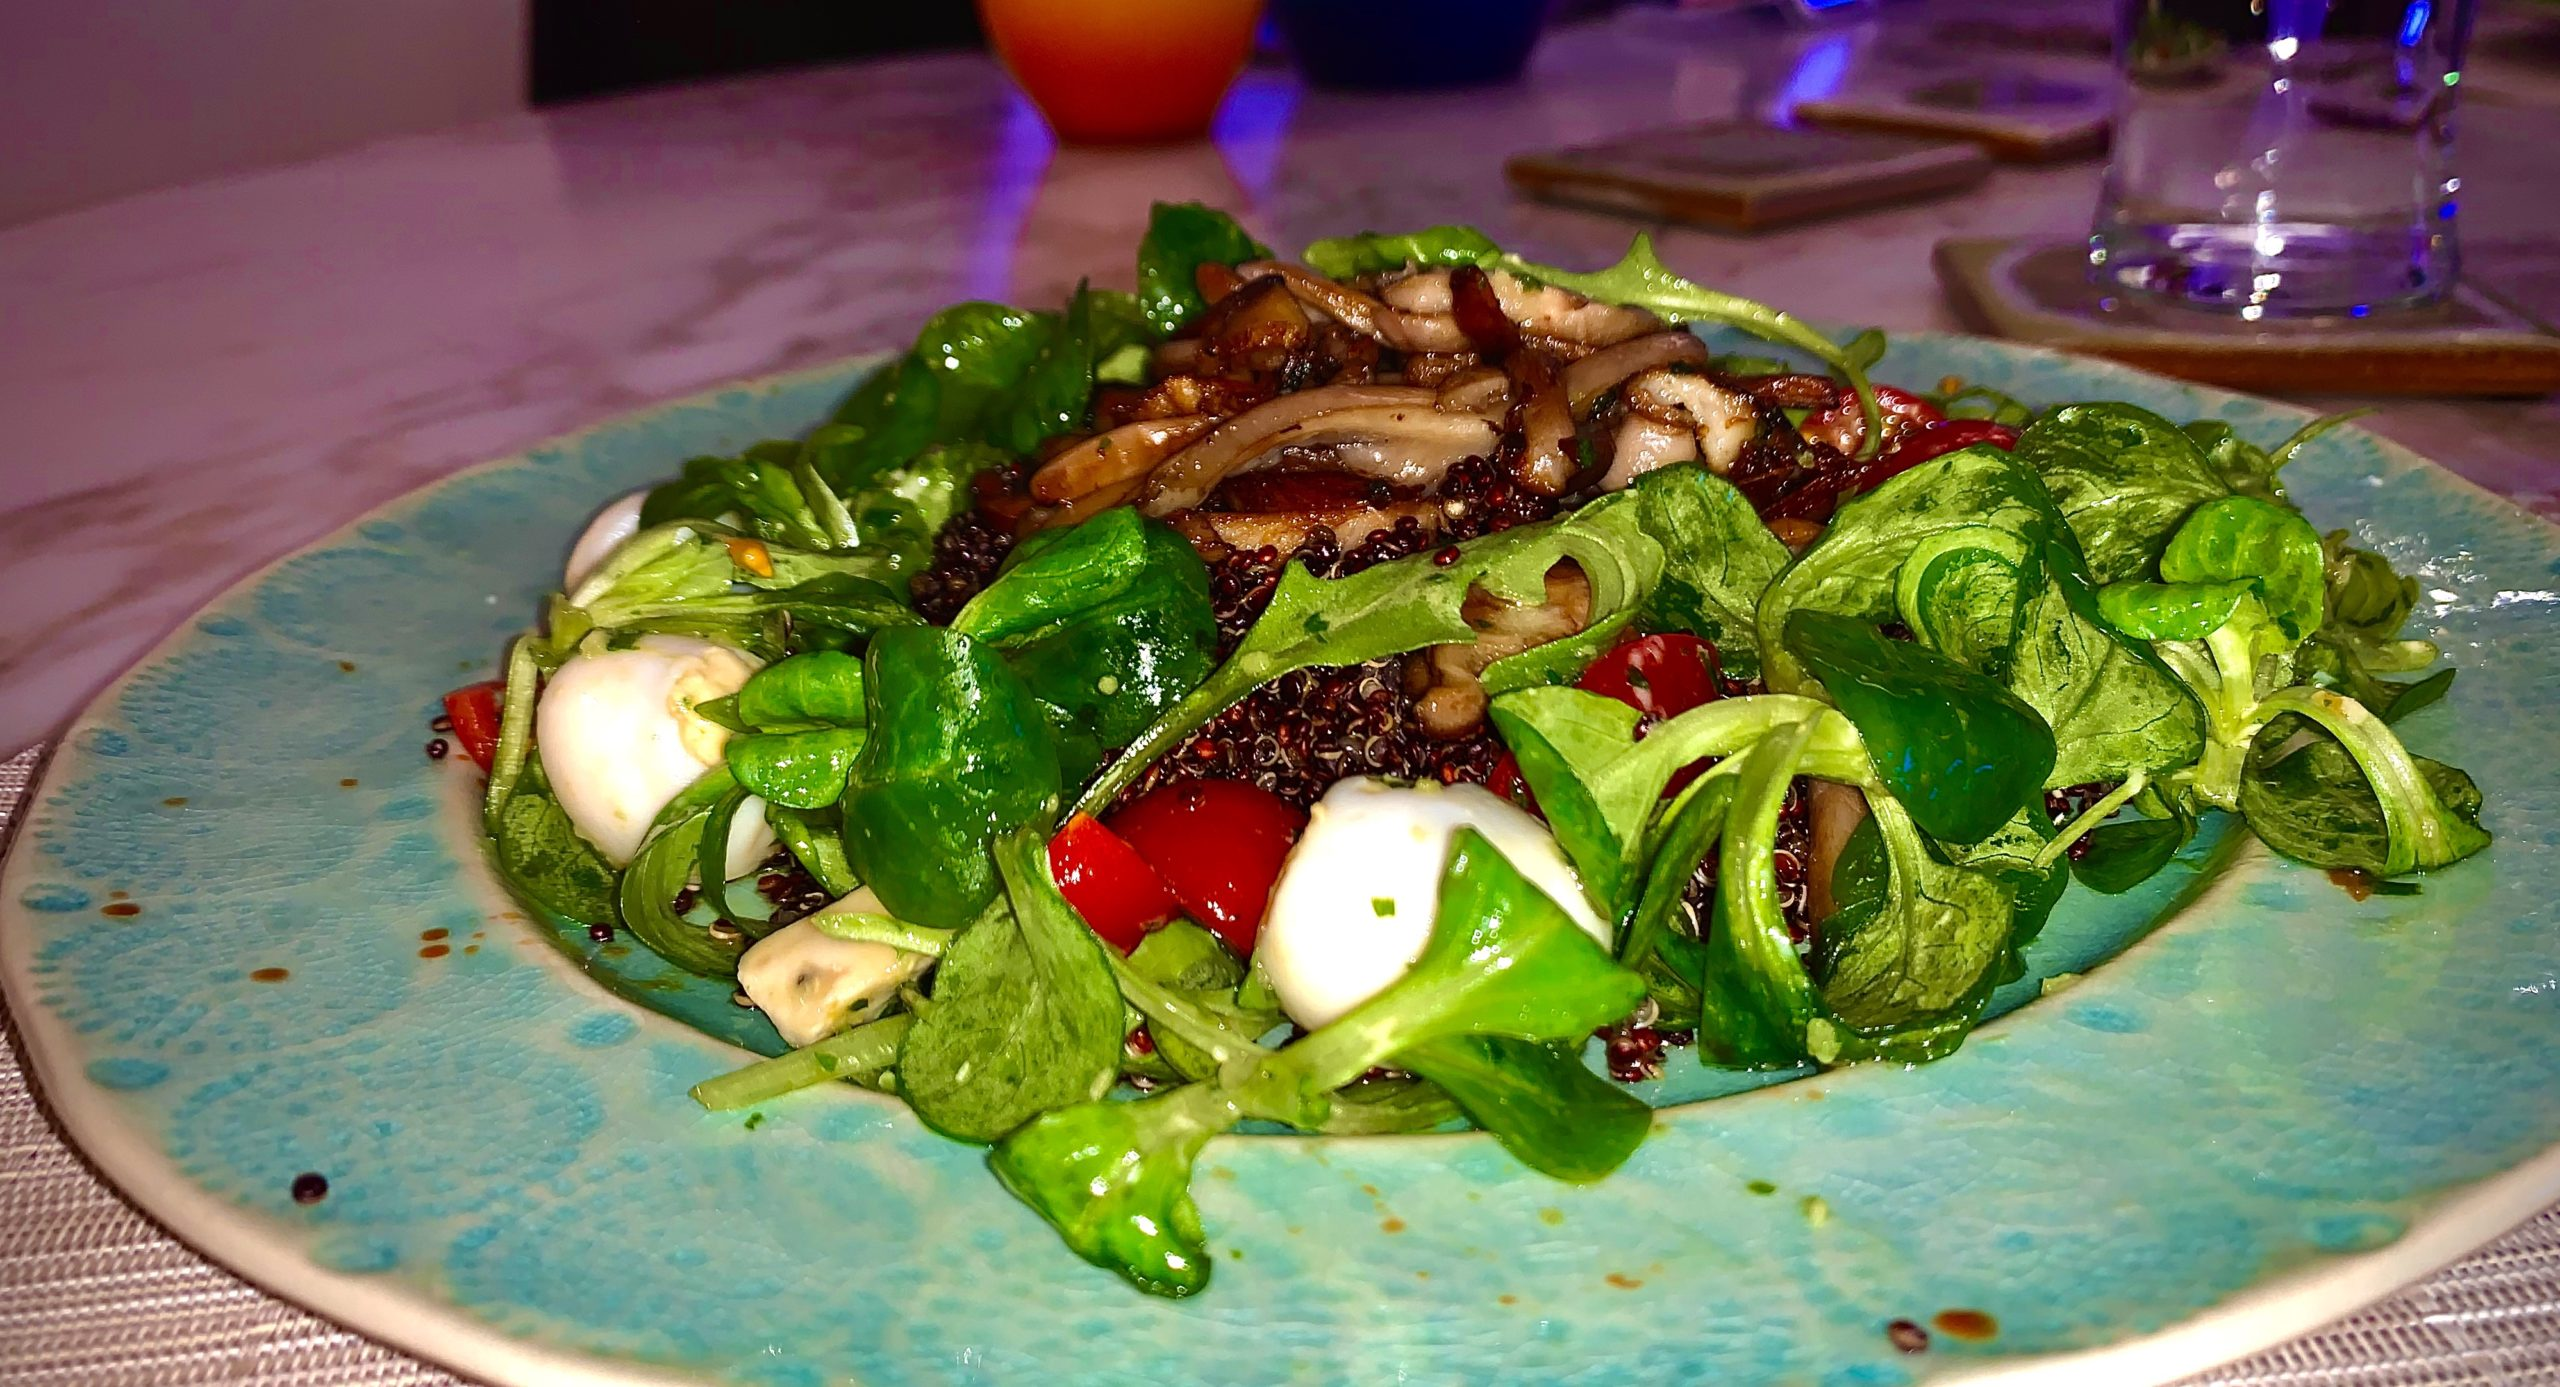 Black Quinoa Mushroom Salad with Quail egg salad